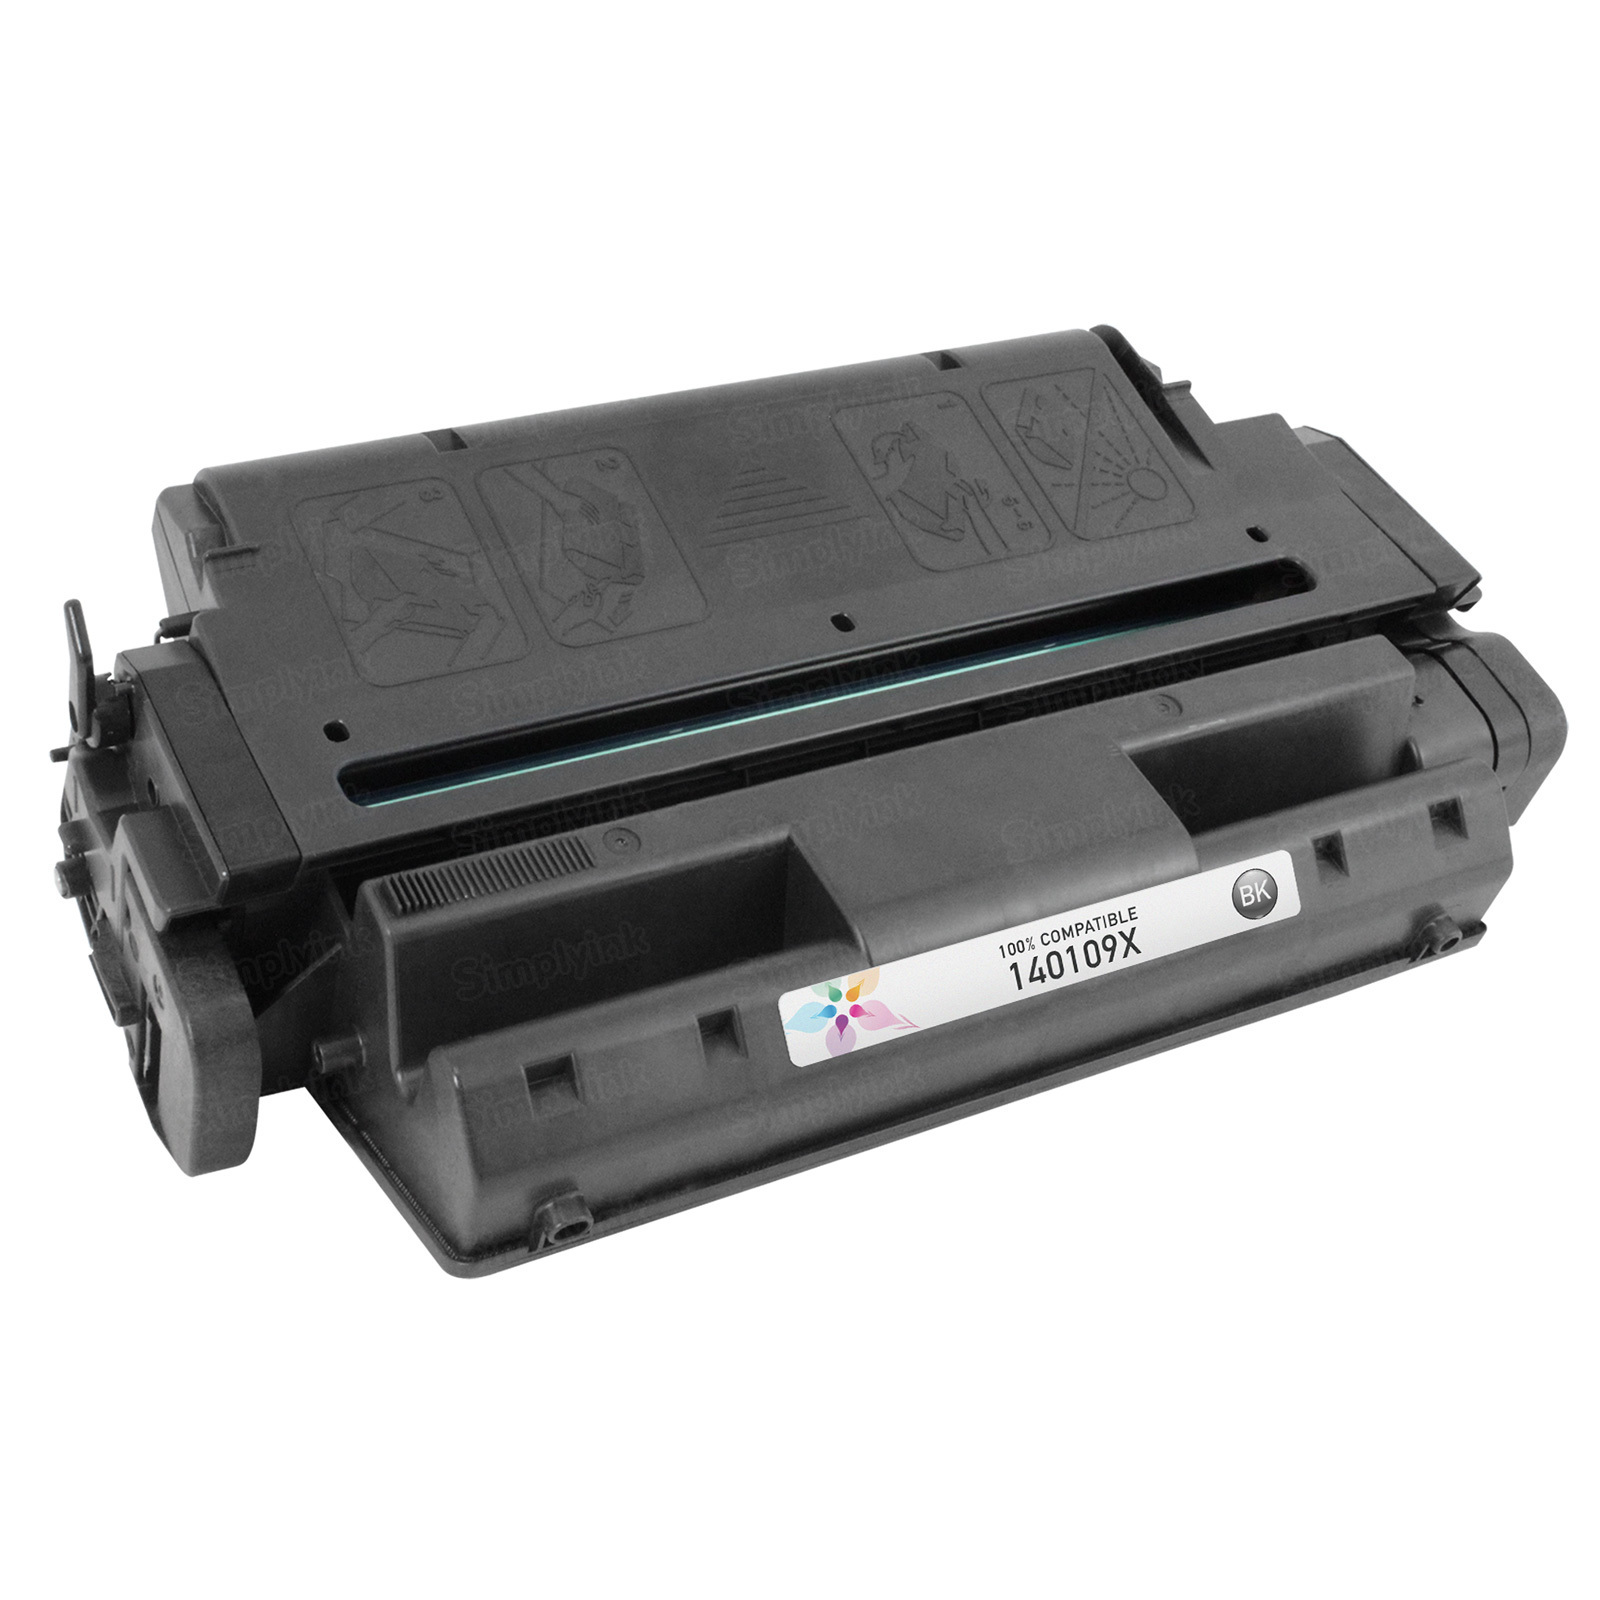 Remanufactured 140109X Black Toner for Lexmark